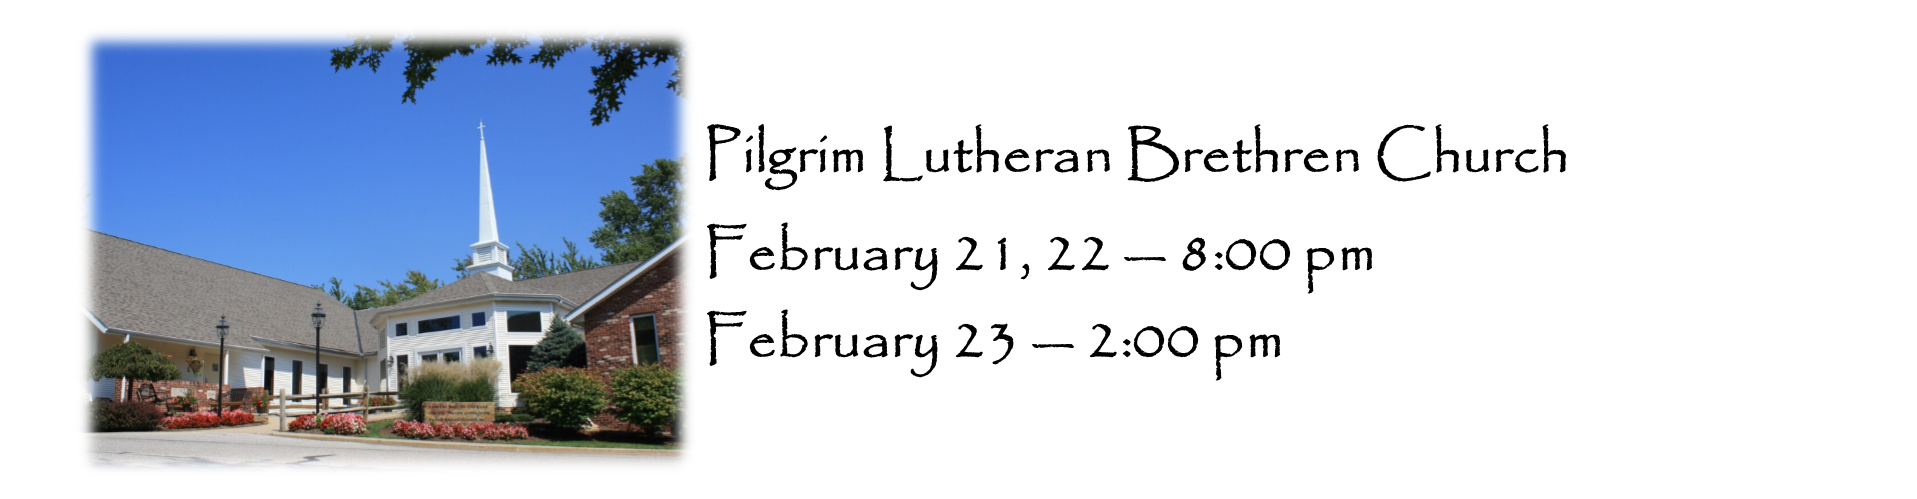 Pilgrim Lutheran Brethren Church